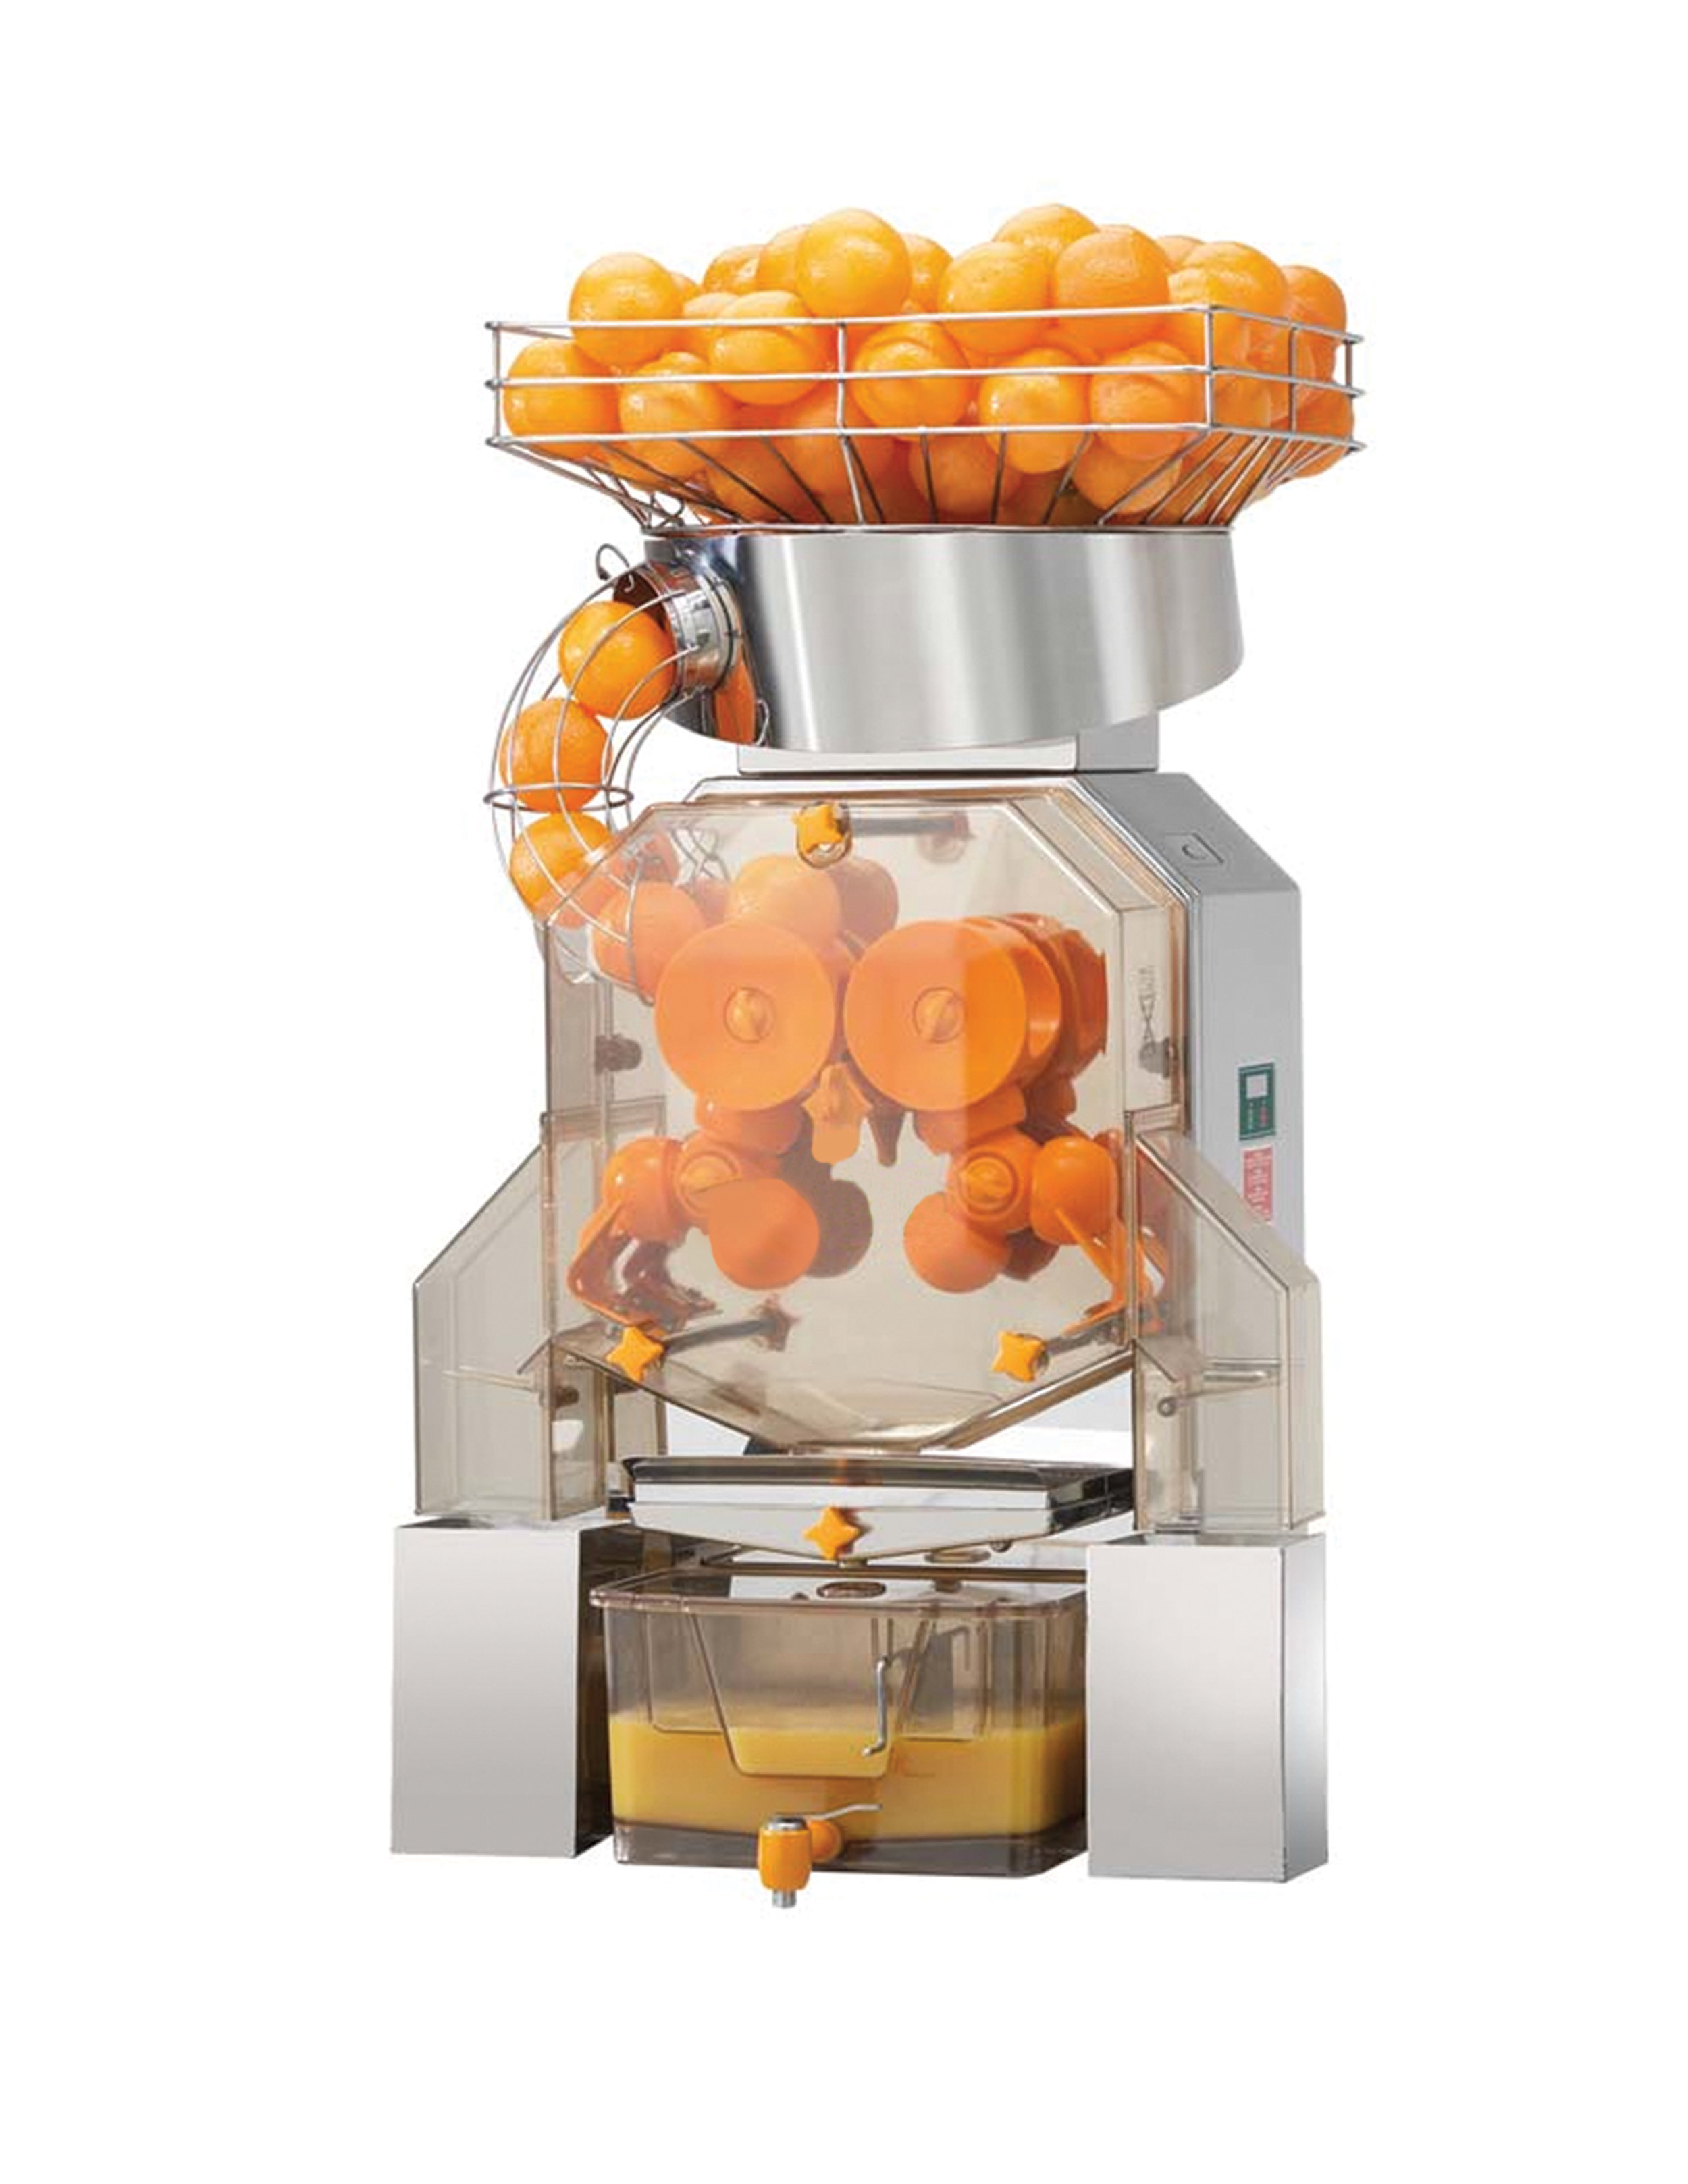 Cruz S30 Commercial Juicer